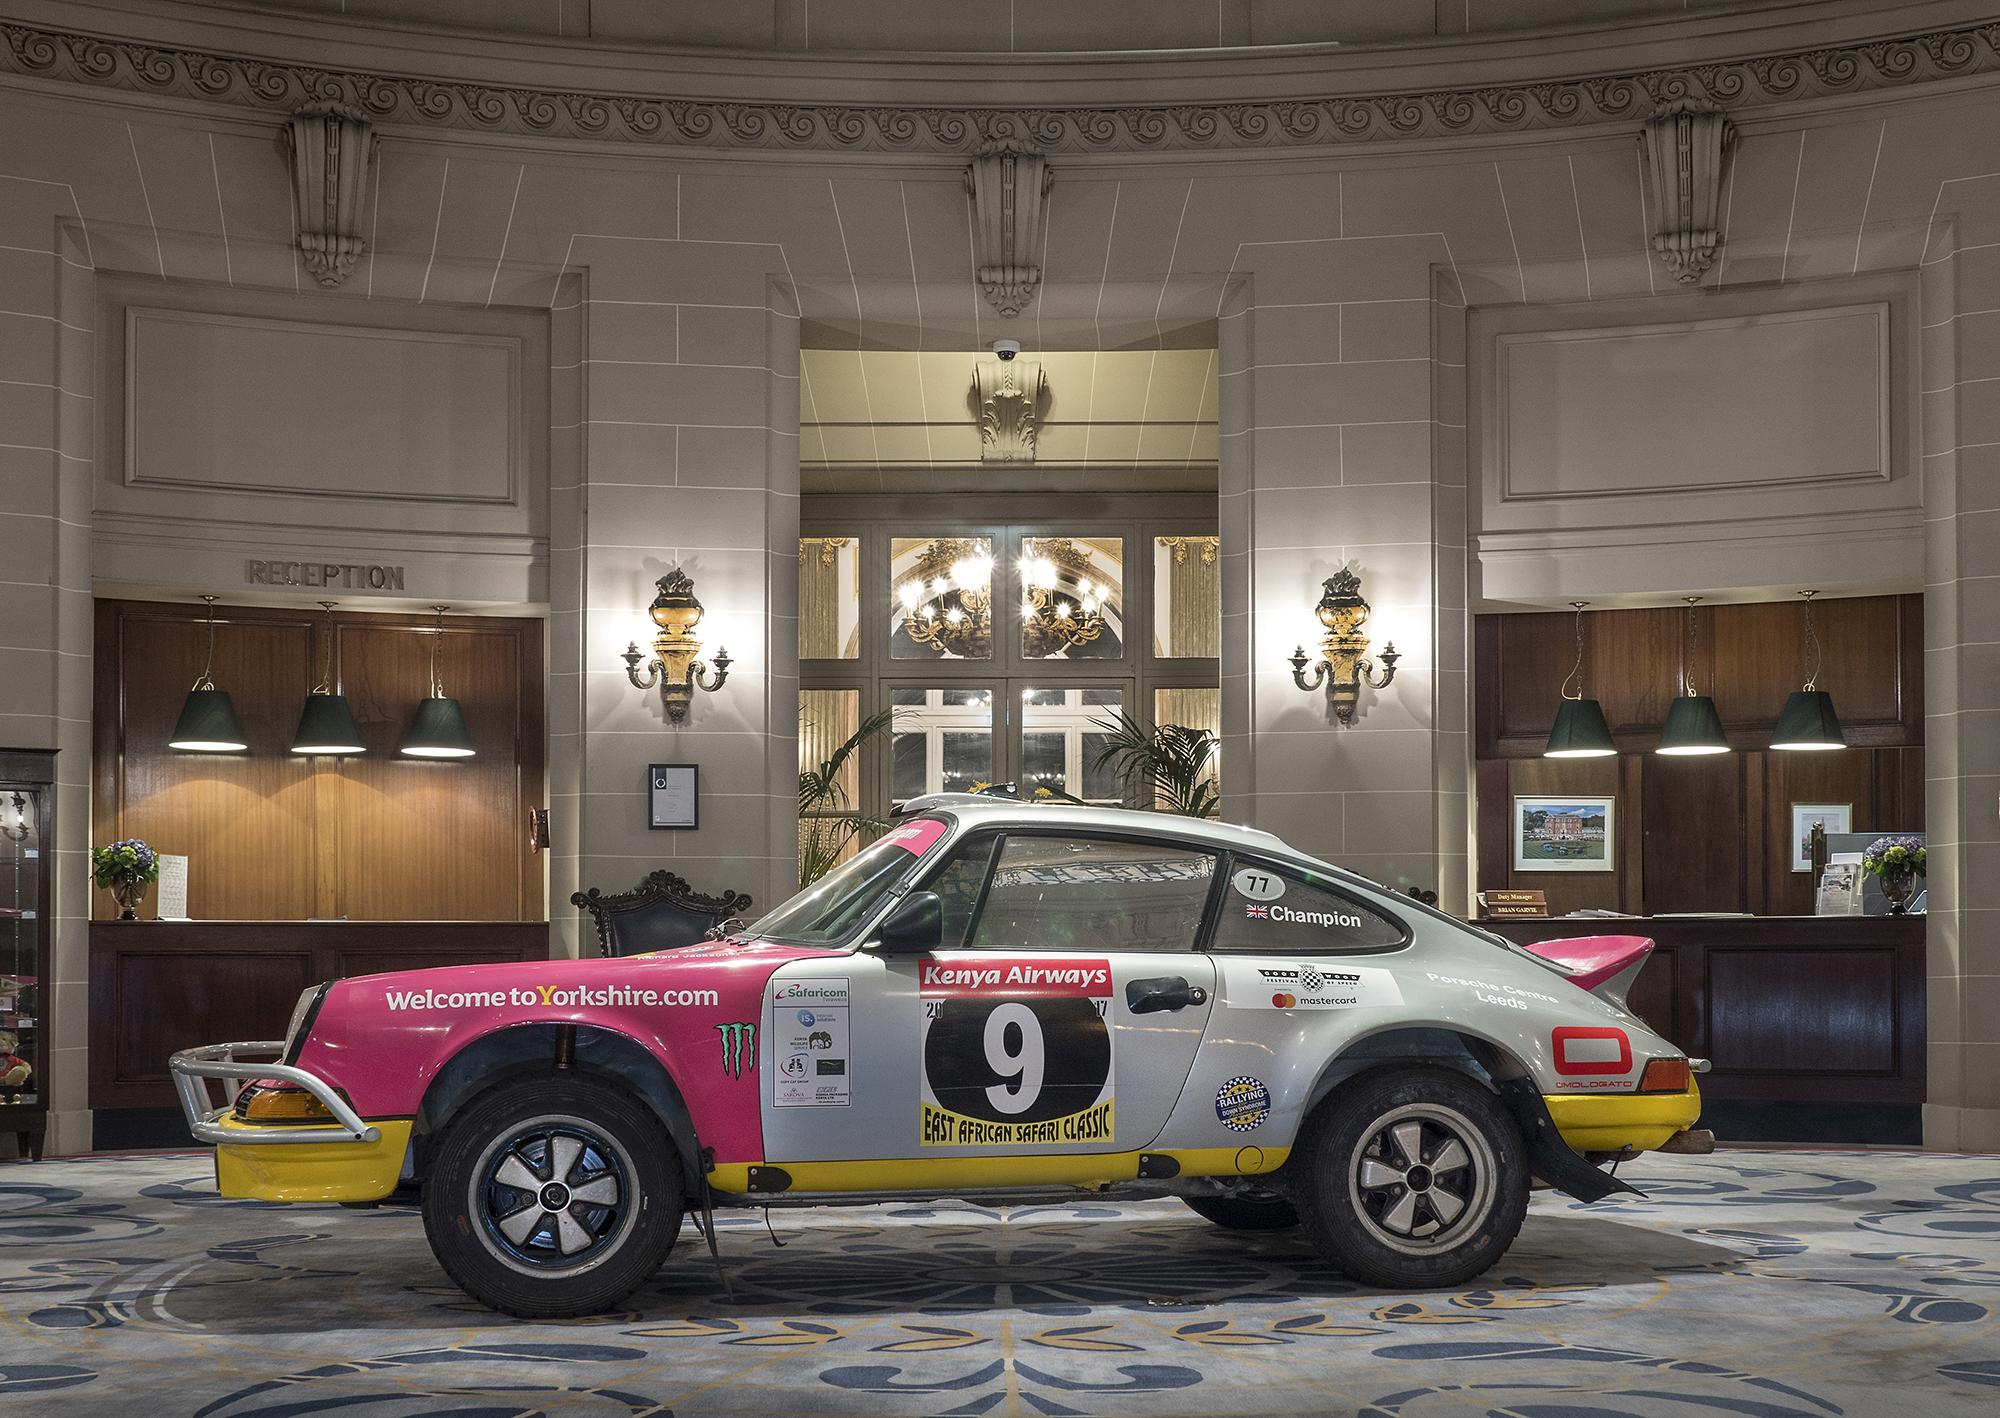 The Omologato 911 at The Rotunda RAC Club